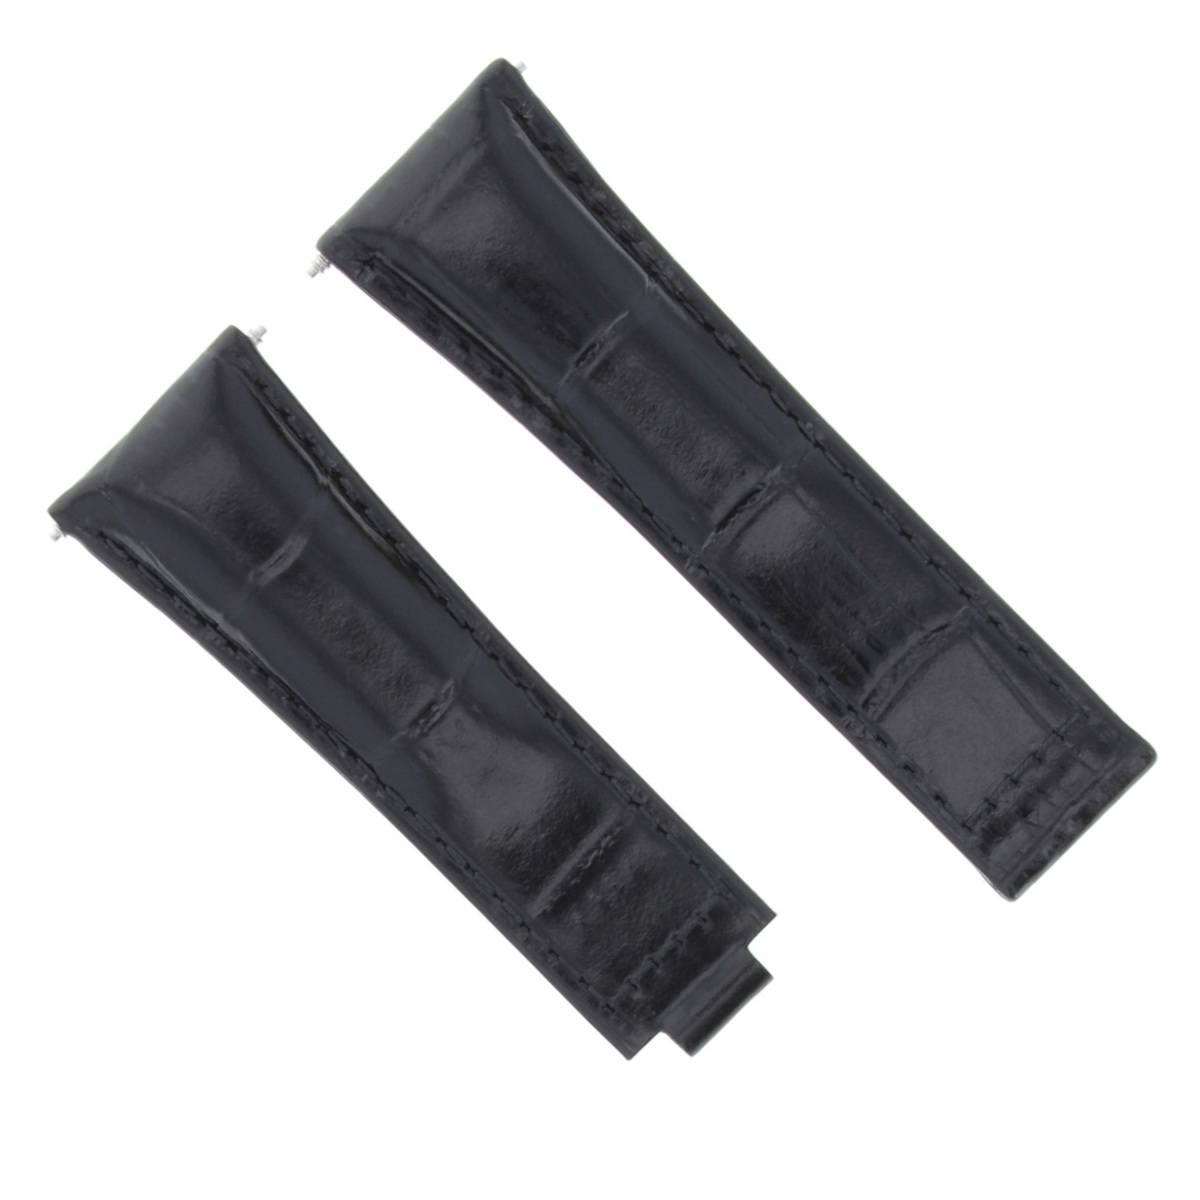 20MM LEATHER WATCH STRAP BAND FOR ROLEX DAYTONA 16518 16519 16520 BLACK SHORT